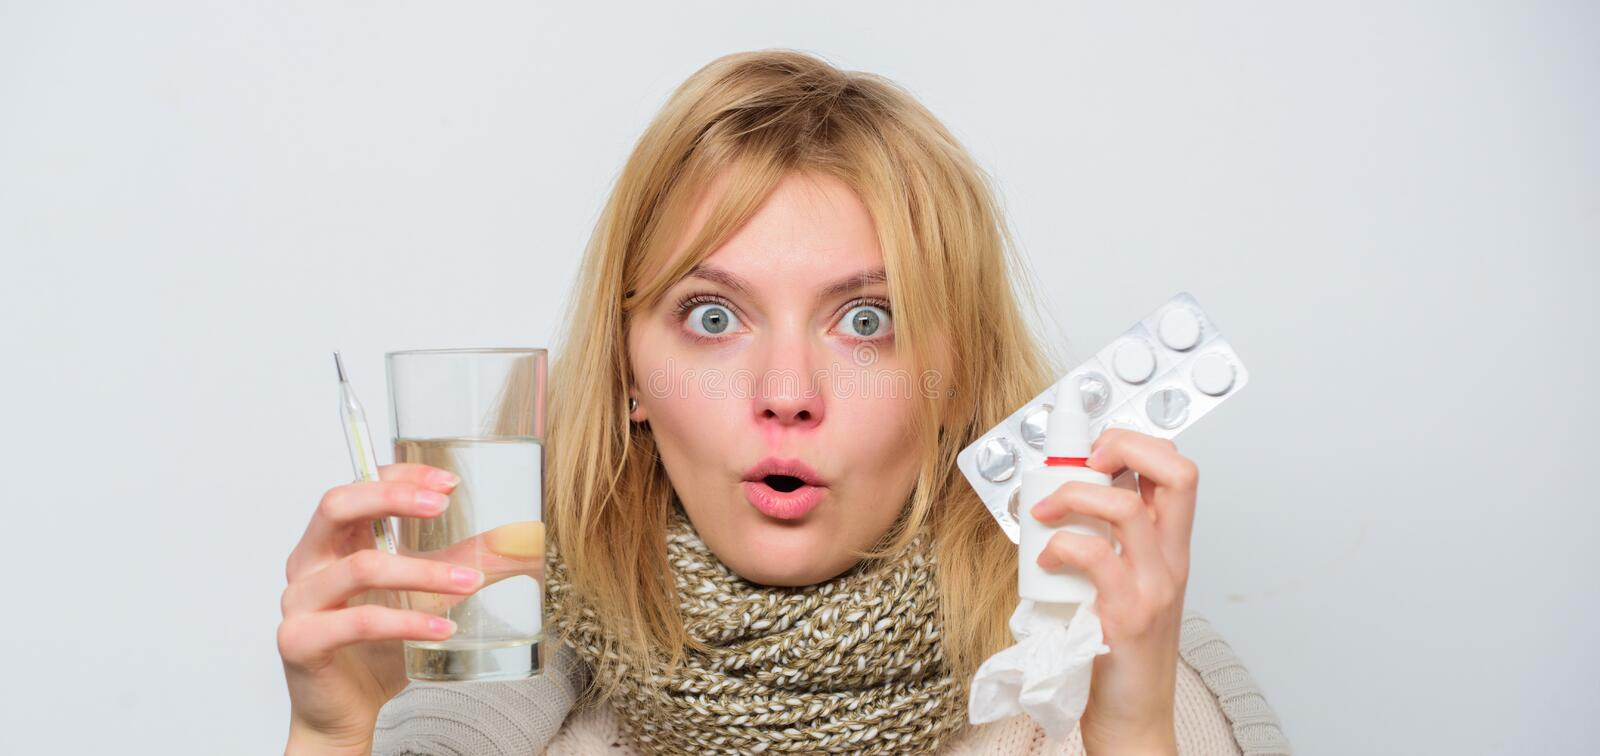 Drink plenty of fluids. Girl take medicine to break fever. Breaking fever concept. Headache and fever remedies. Woman. Sick person hold glass water and tablets stock image